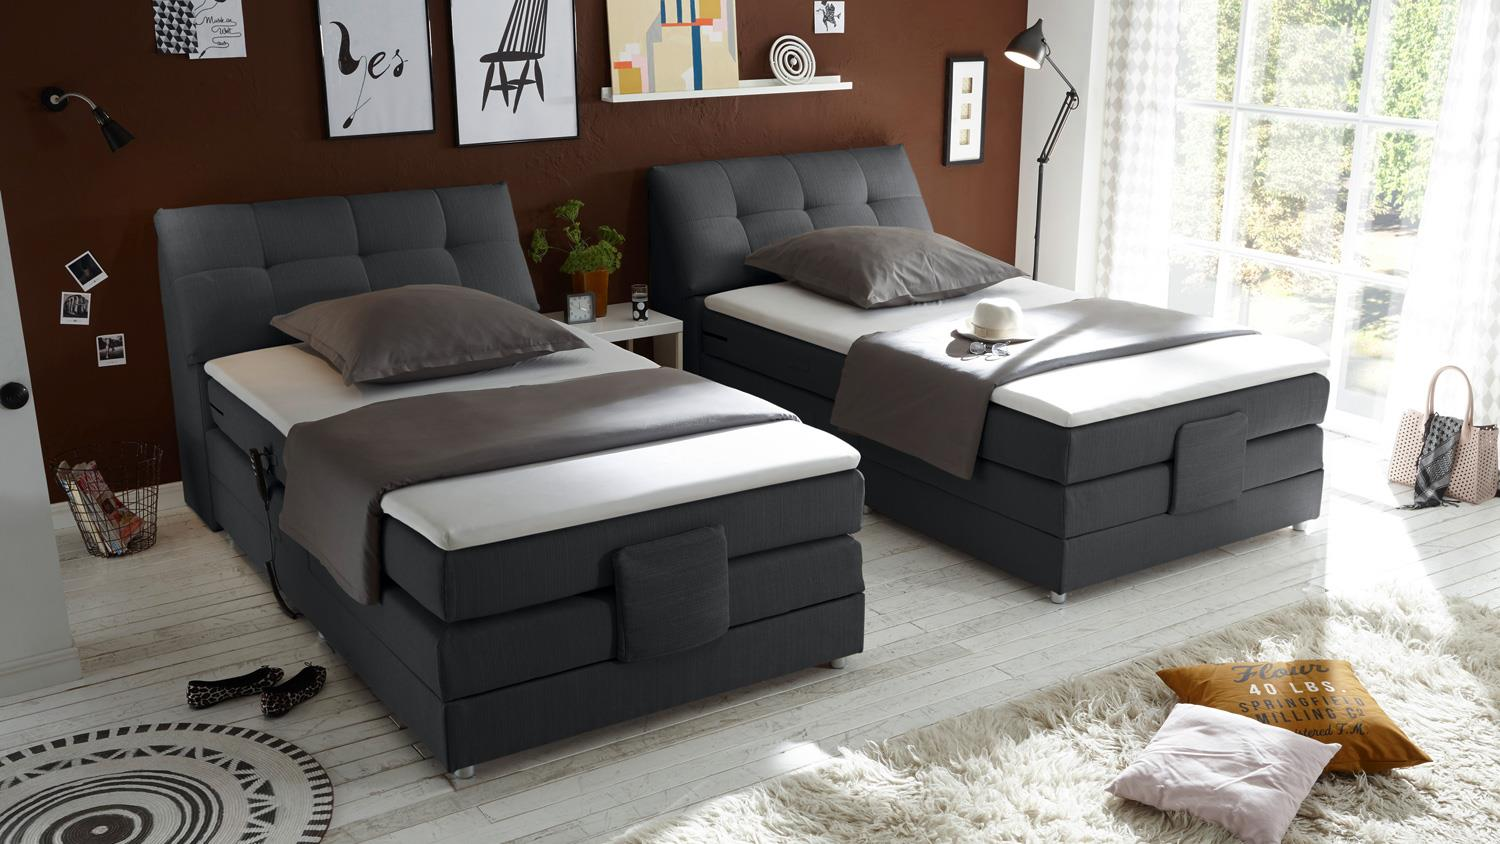 boxspringbett concort stoff anthrazit komfortbett mit motor 120x200 cm. Black Bedroom Furniture Sets. Home Design Ideas